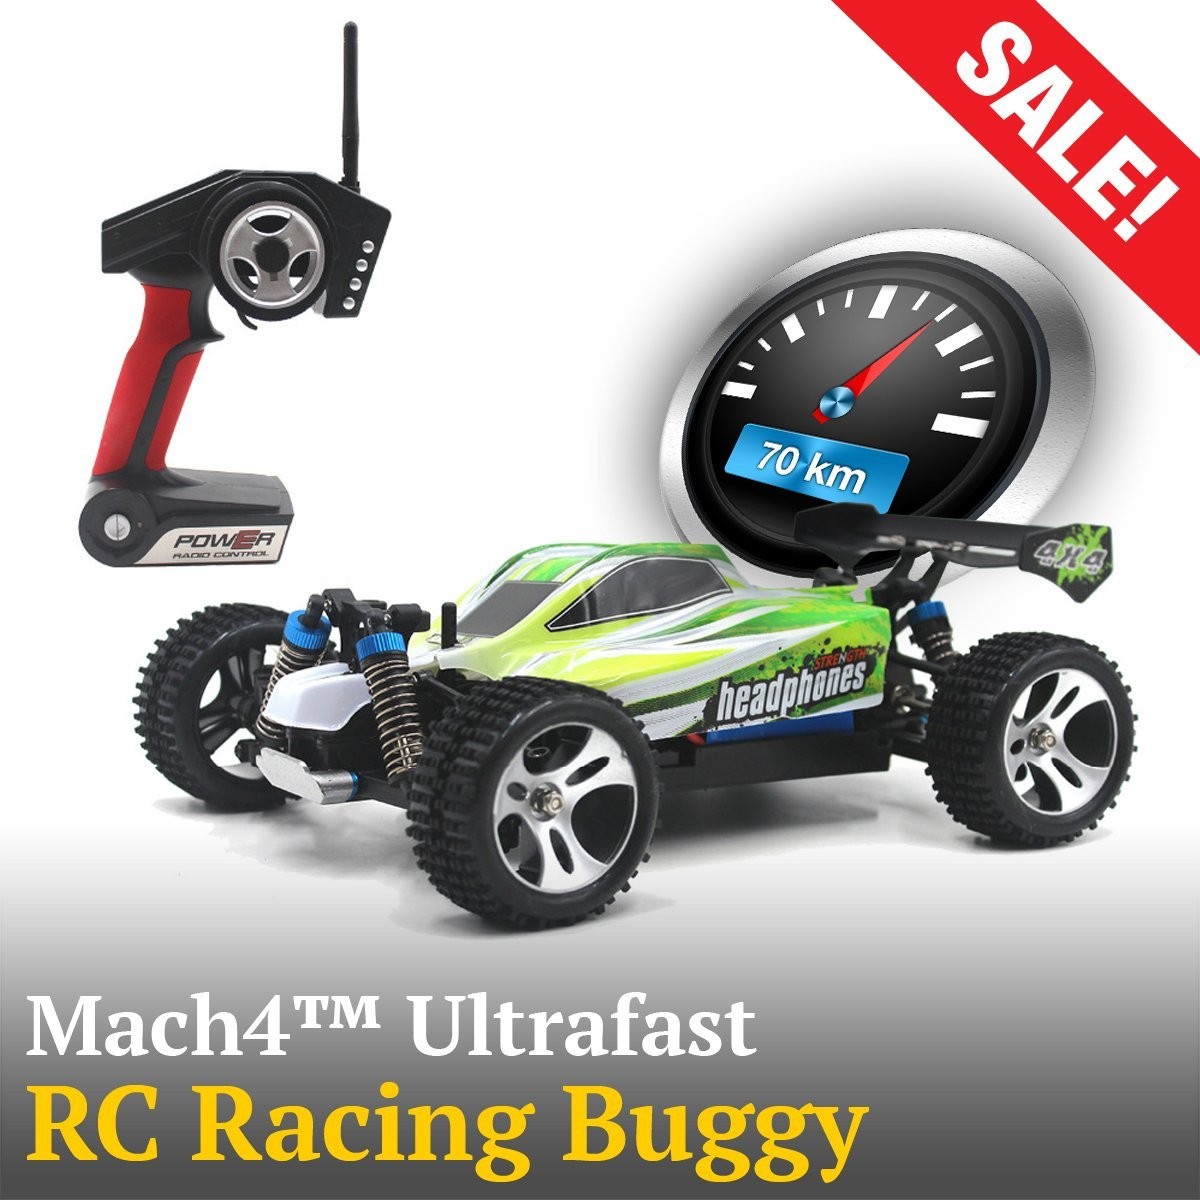 Mach4™ Ultrafast RC Racing Buggy